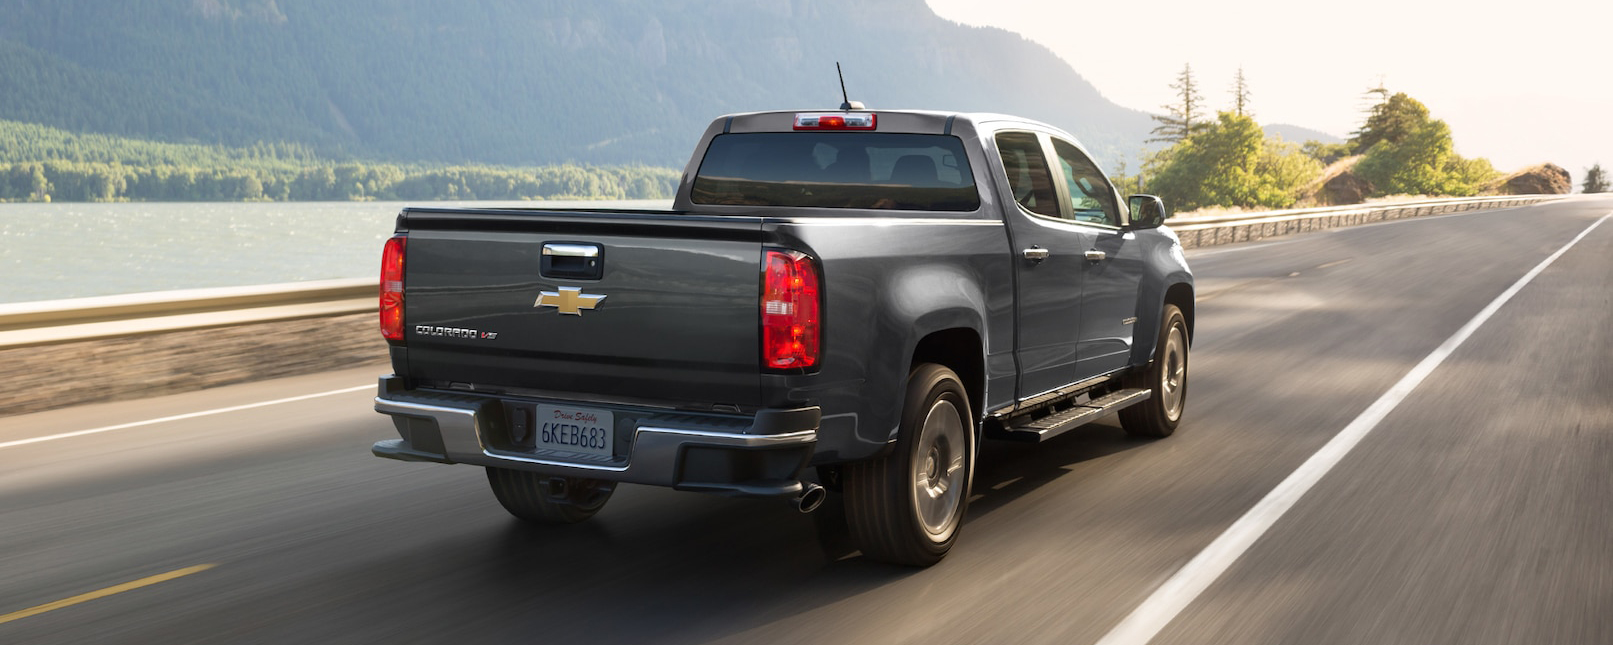 2019 Chevrolet Colorado Design